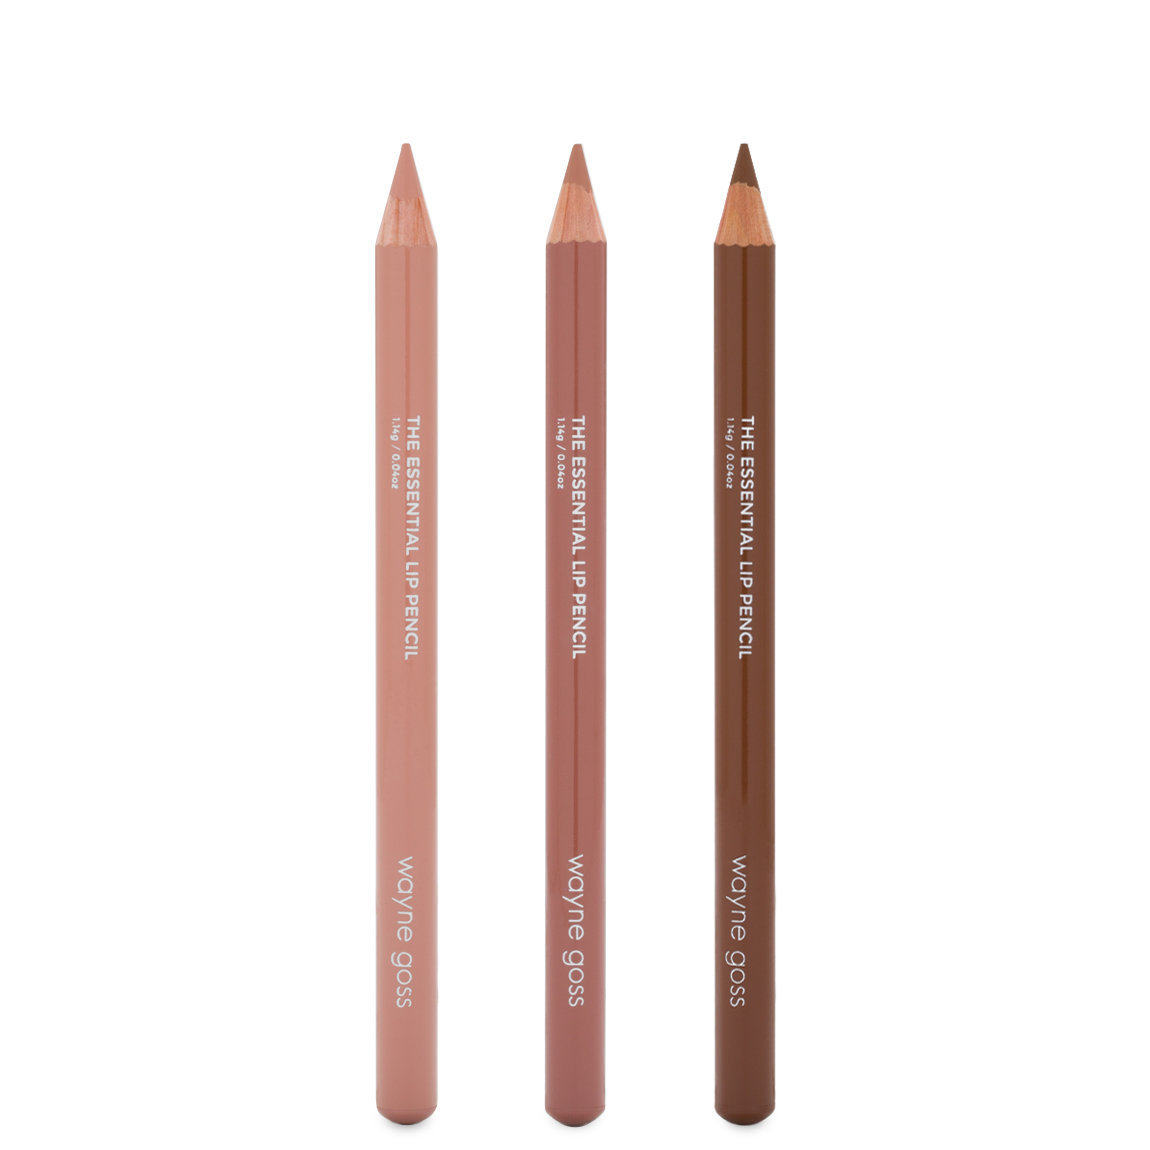 Wayne Goss The Nude Essential Lip Pencil Collection alternative view 1 - product swatch.